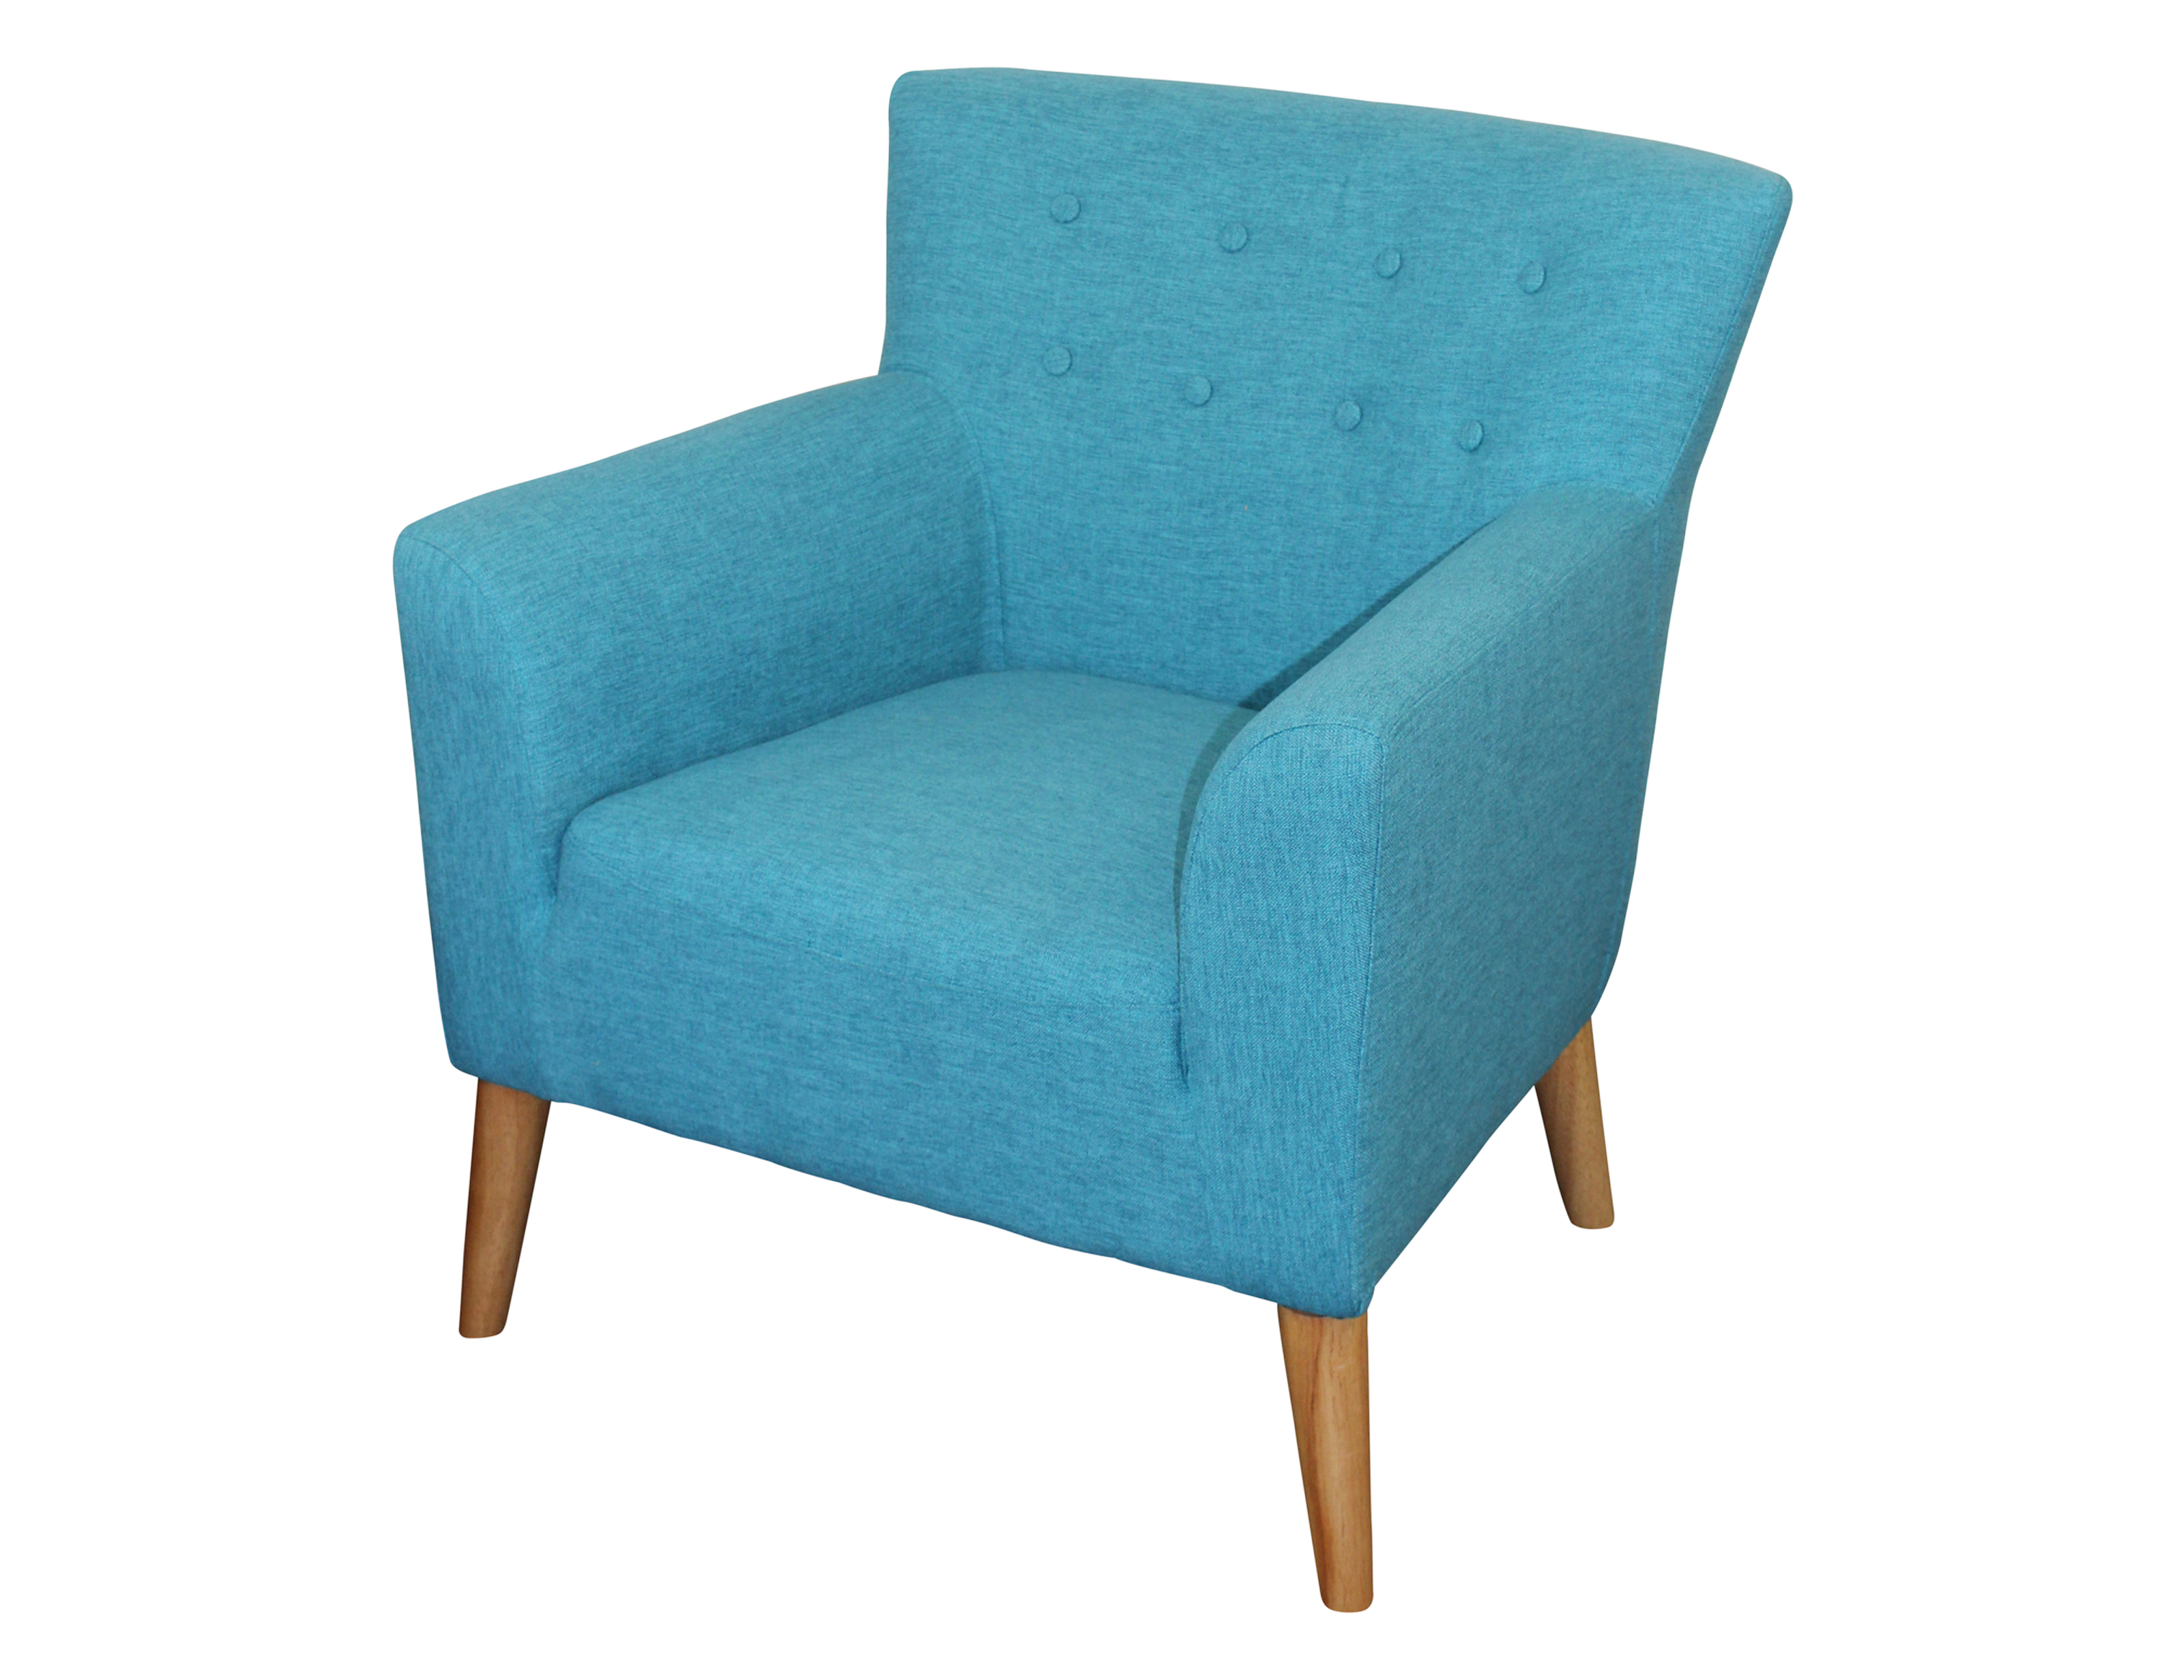 Darcy Chair 81 X 79 X 75 Fiesta Teal Fabric Berton Furniture